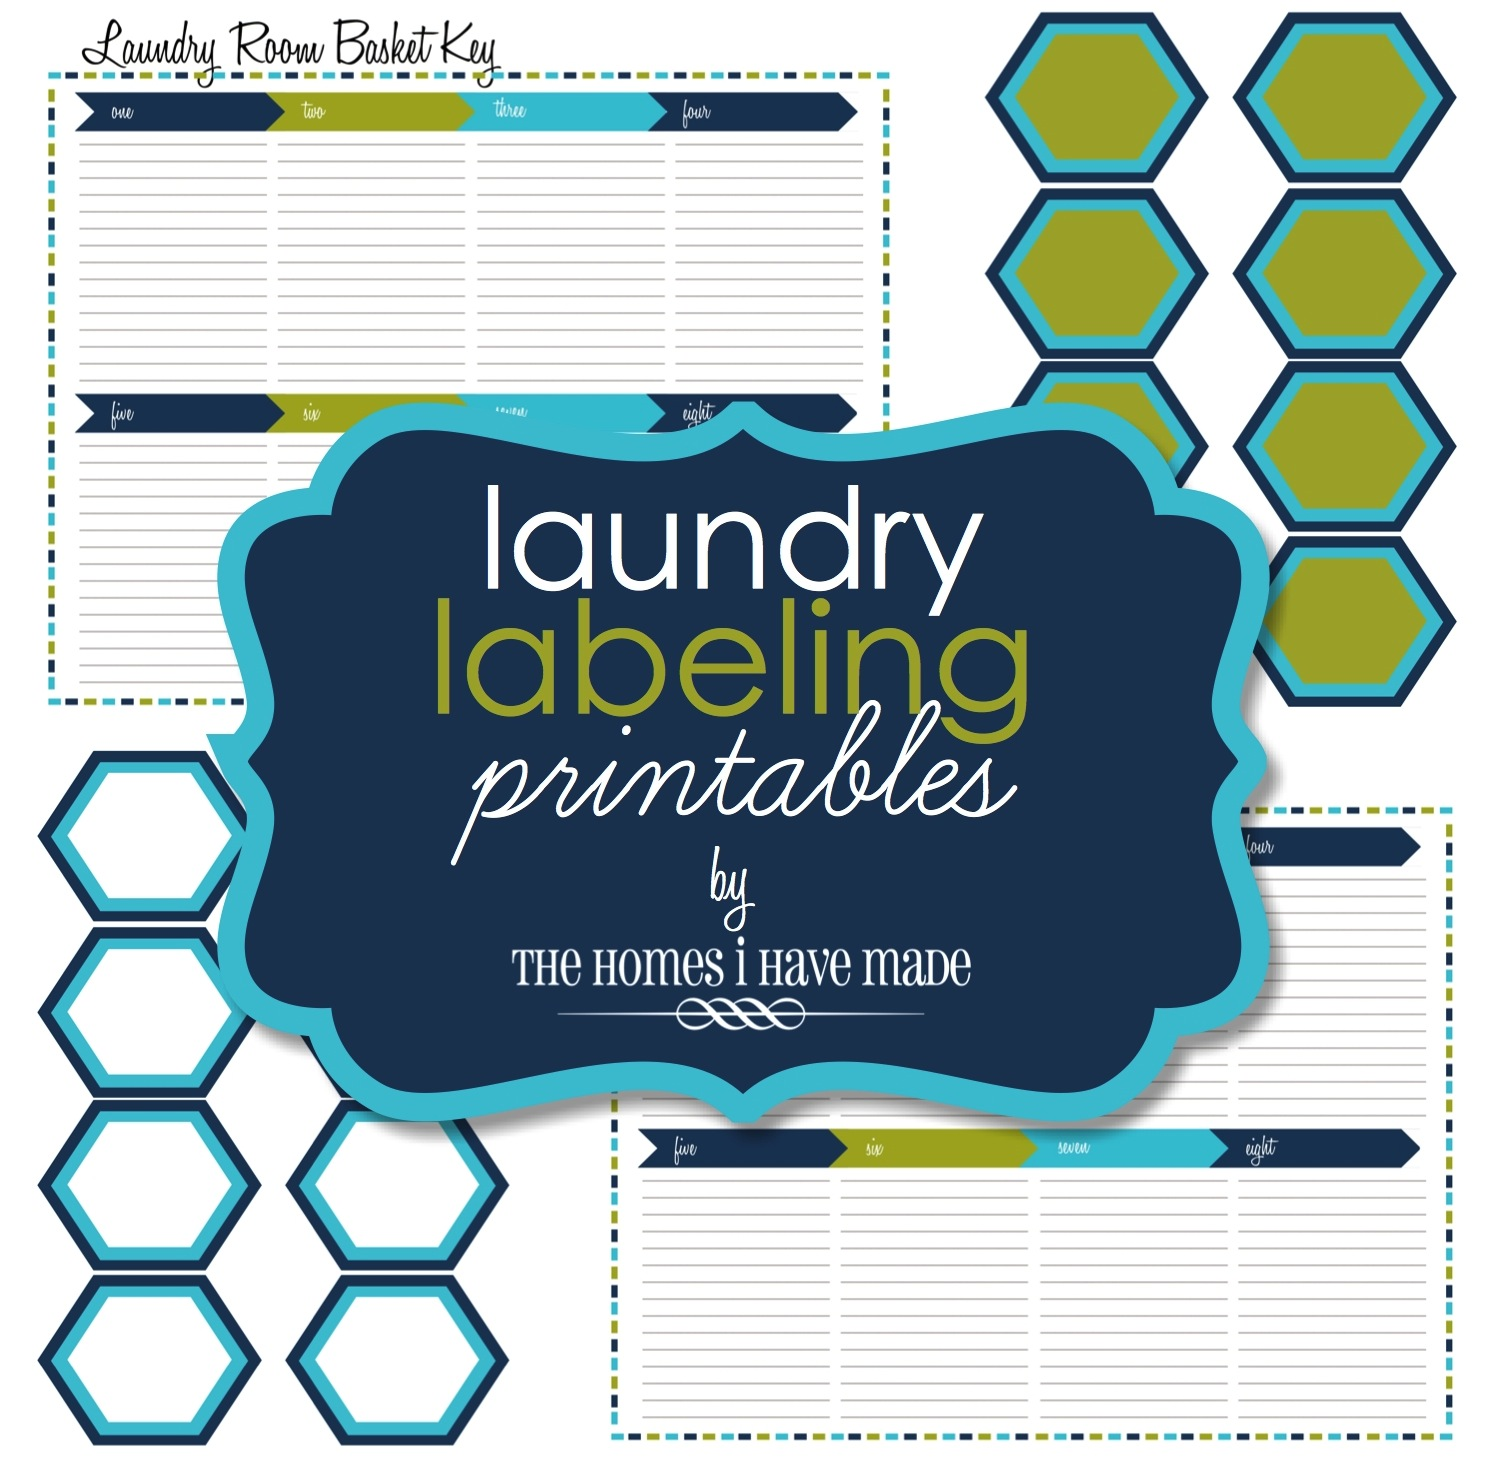 Laundry Labeling Printables